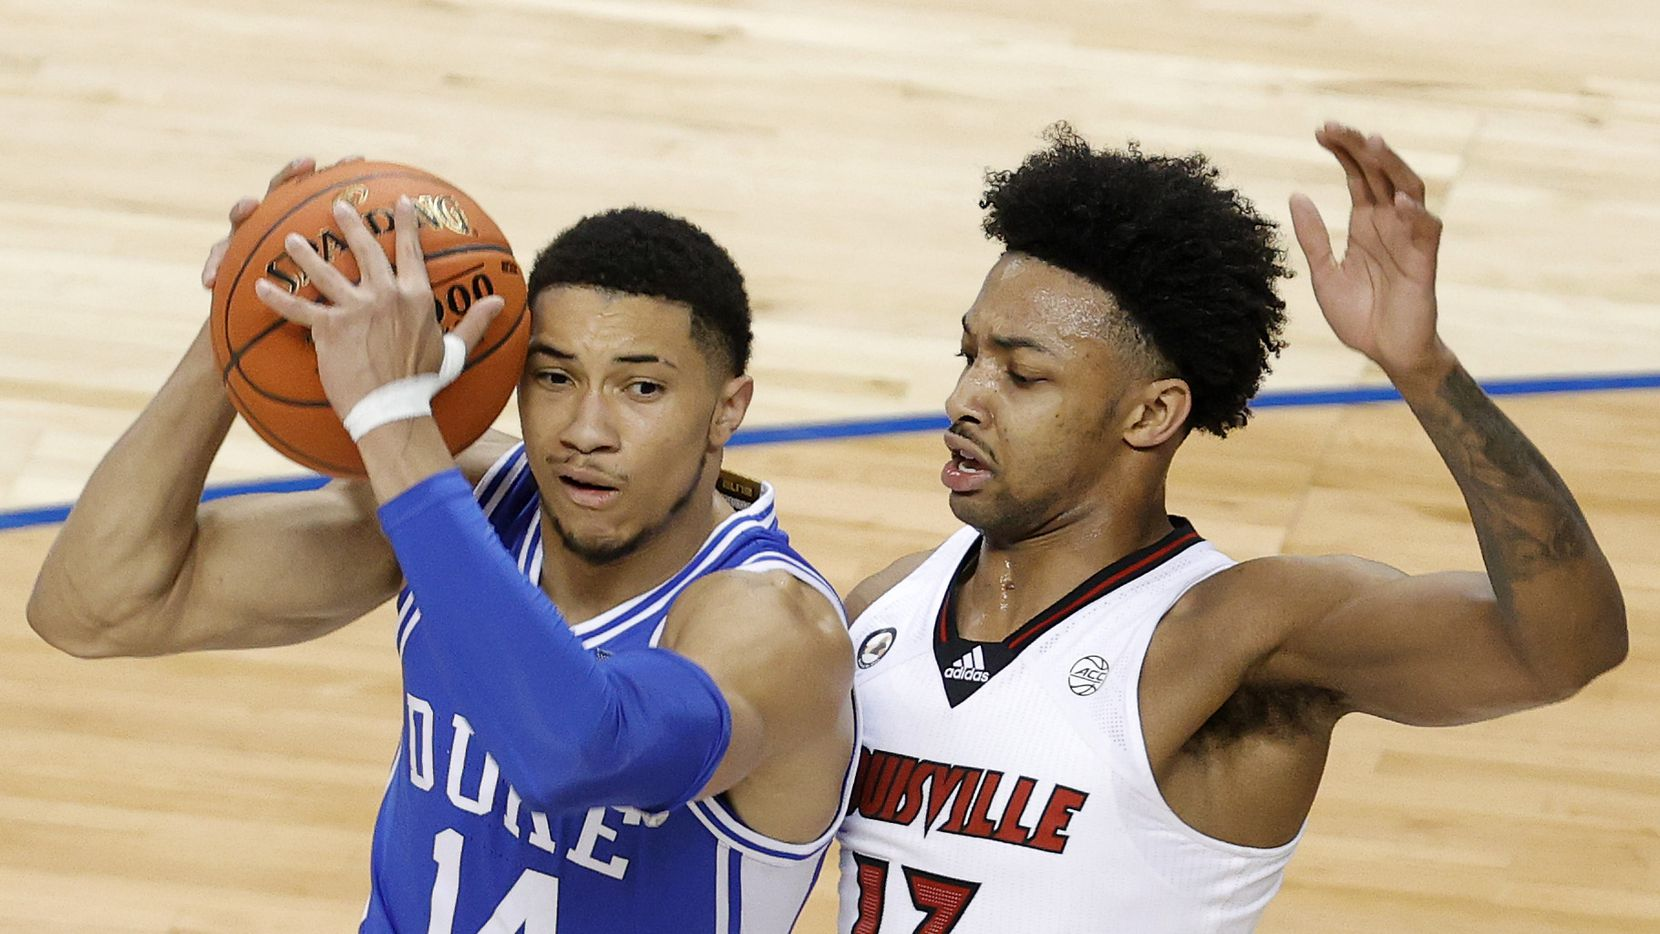 GREENSBORO, NORTH CAROLINA - MARCH 10: Jordan Goldwire #14 of the Duke Blue Devils drives against David Johnson #13 of the Louisville Cardinals during the first half of their second round game in the ACC Men's Basketball Tournament at Greensboro Coliseum on March 10, 2021 in Greensboro, North Carolina. (Photo by Jared C. Tilton/Getty Images)